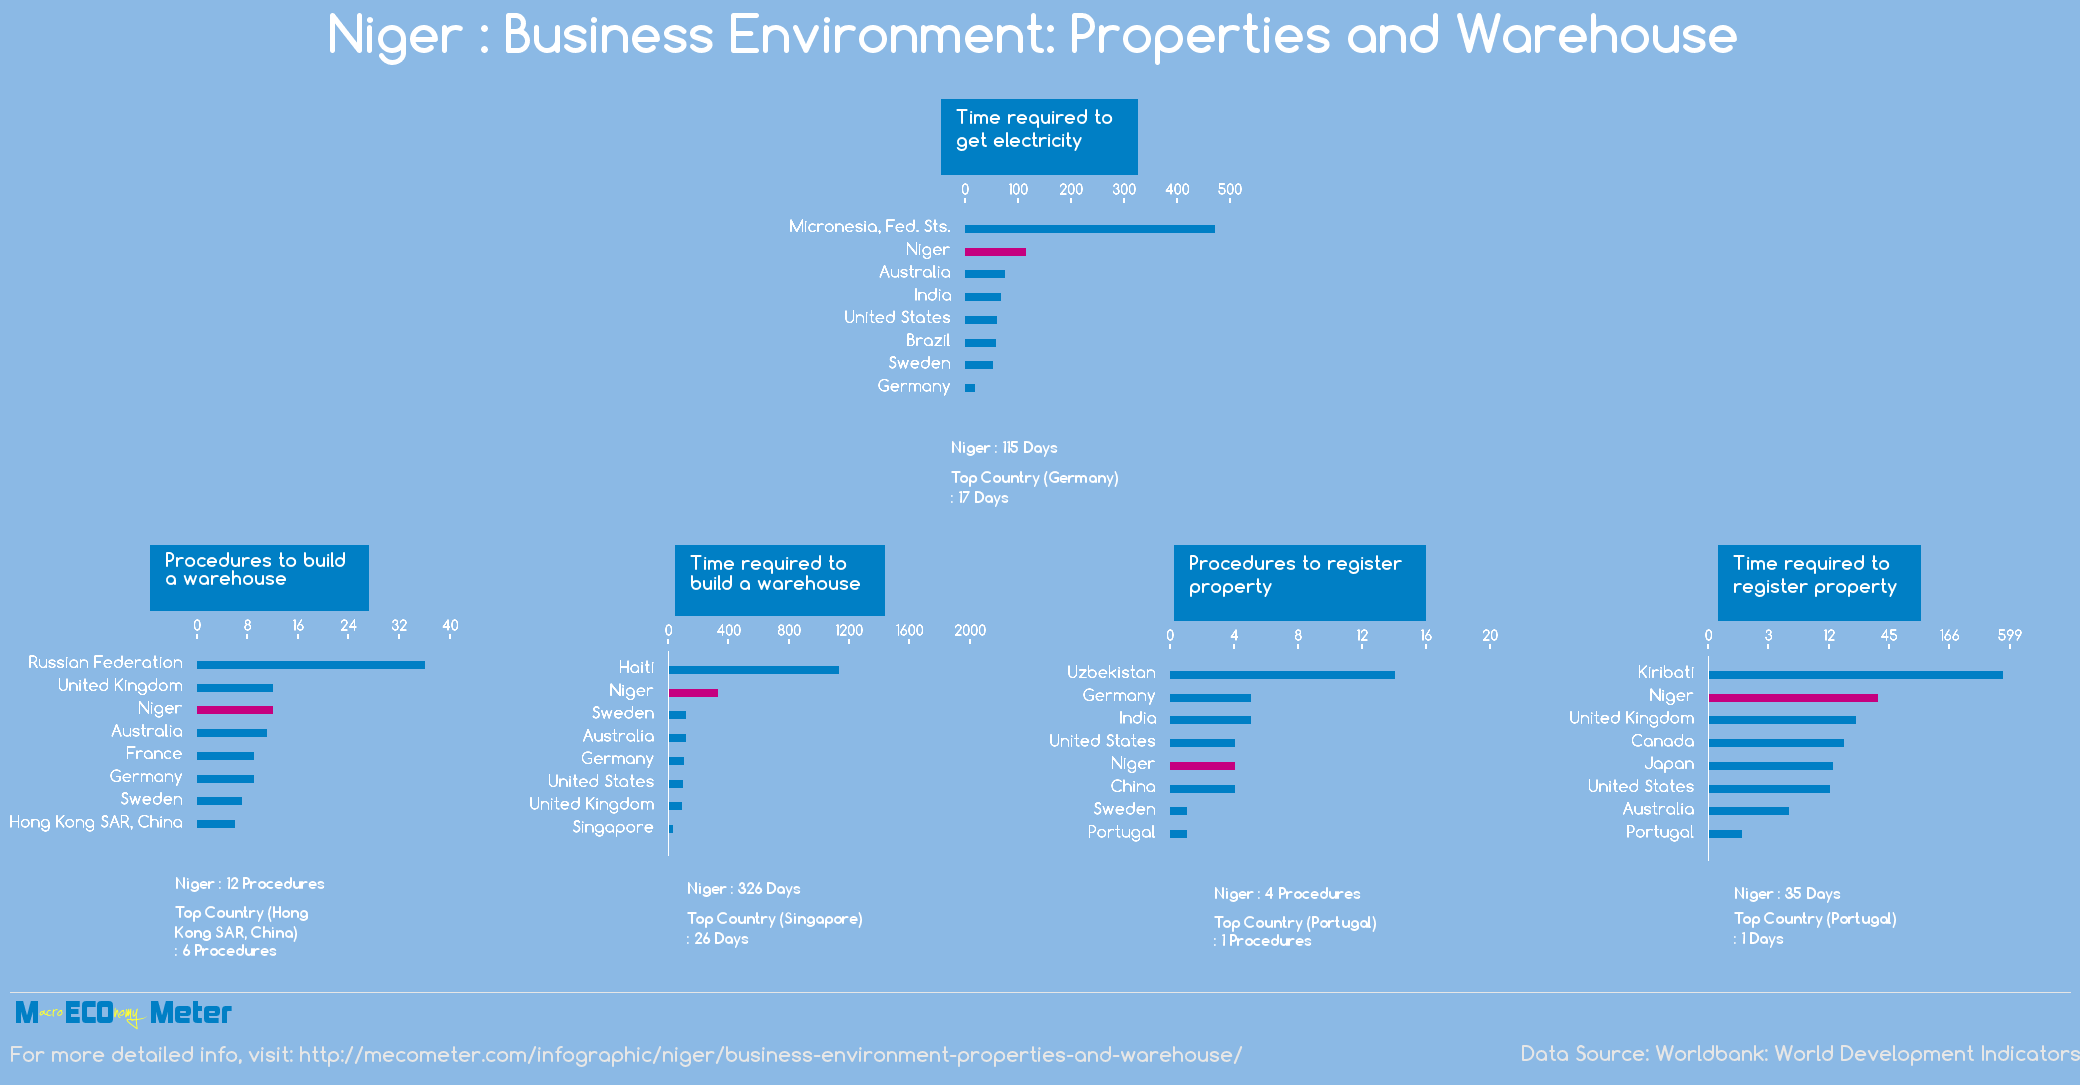 Niger : Business Environment: Properties and Warehouse